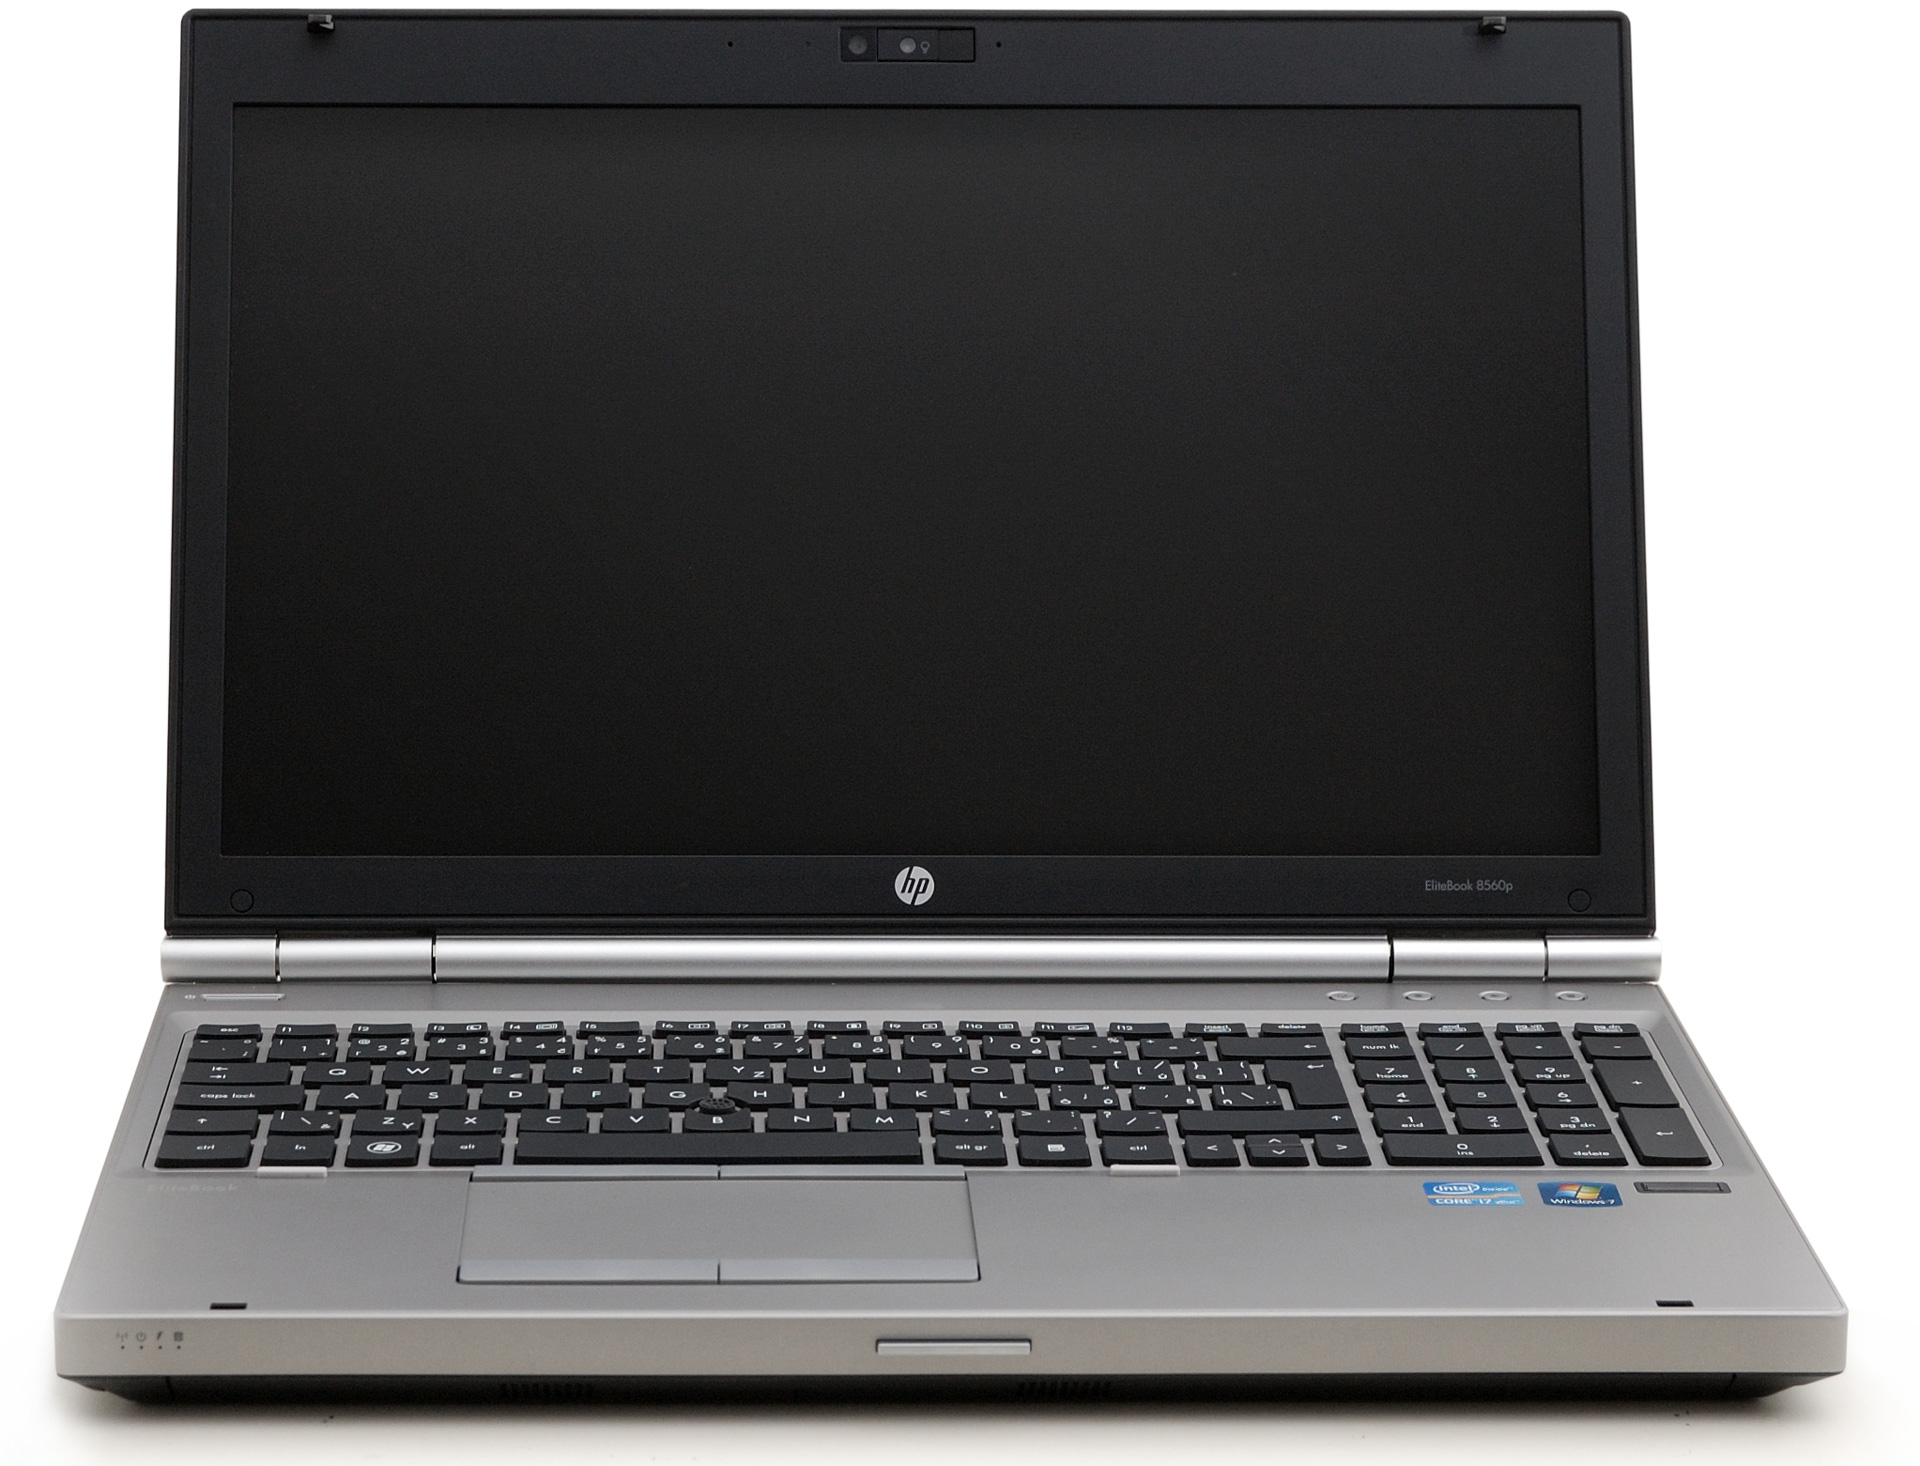 Image result for hp probook 8560p